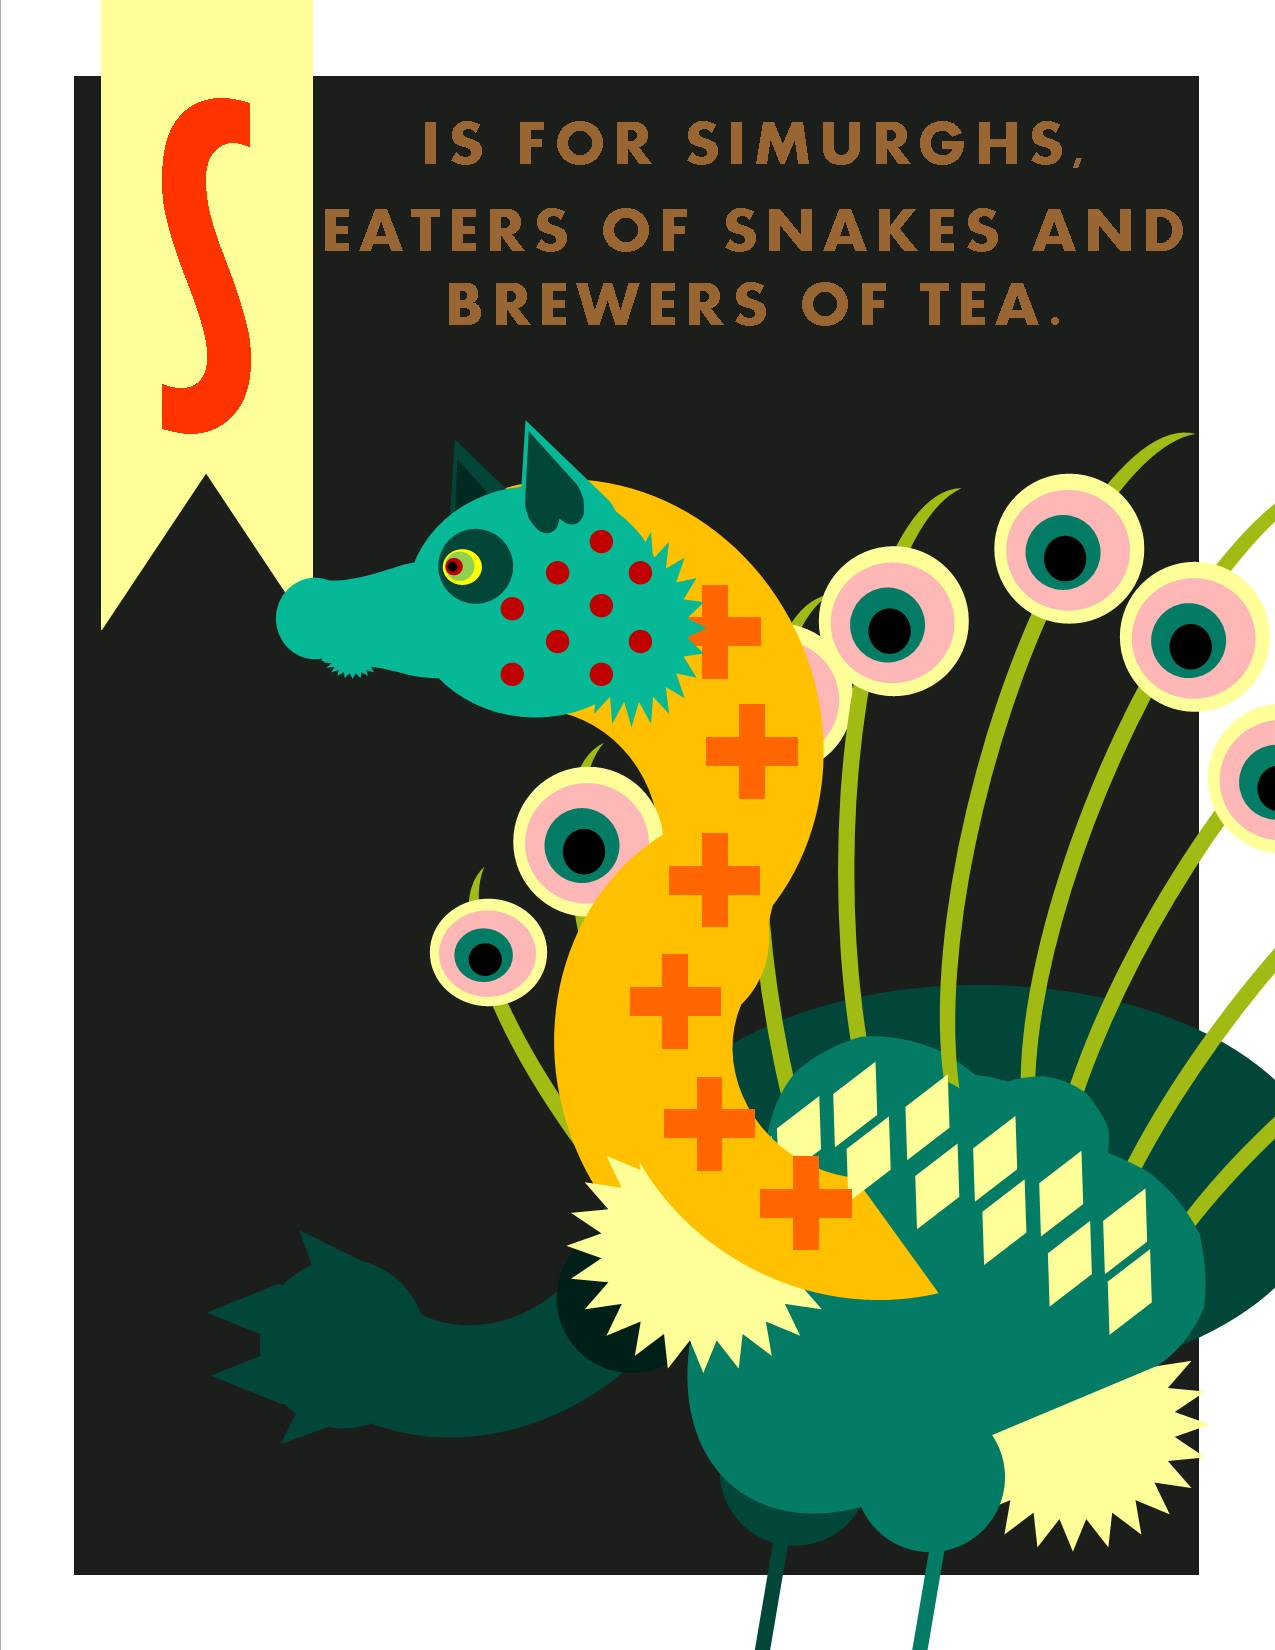 S is for Simurghs, Eaters of Snakes and Brewers of Tea.